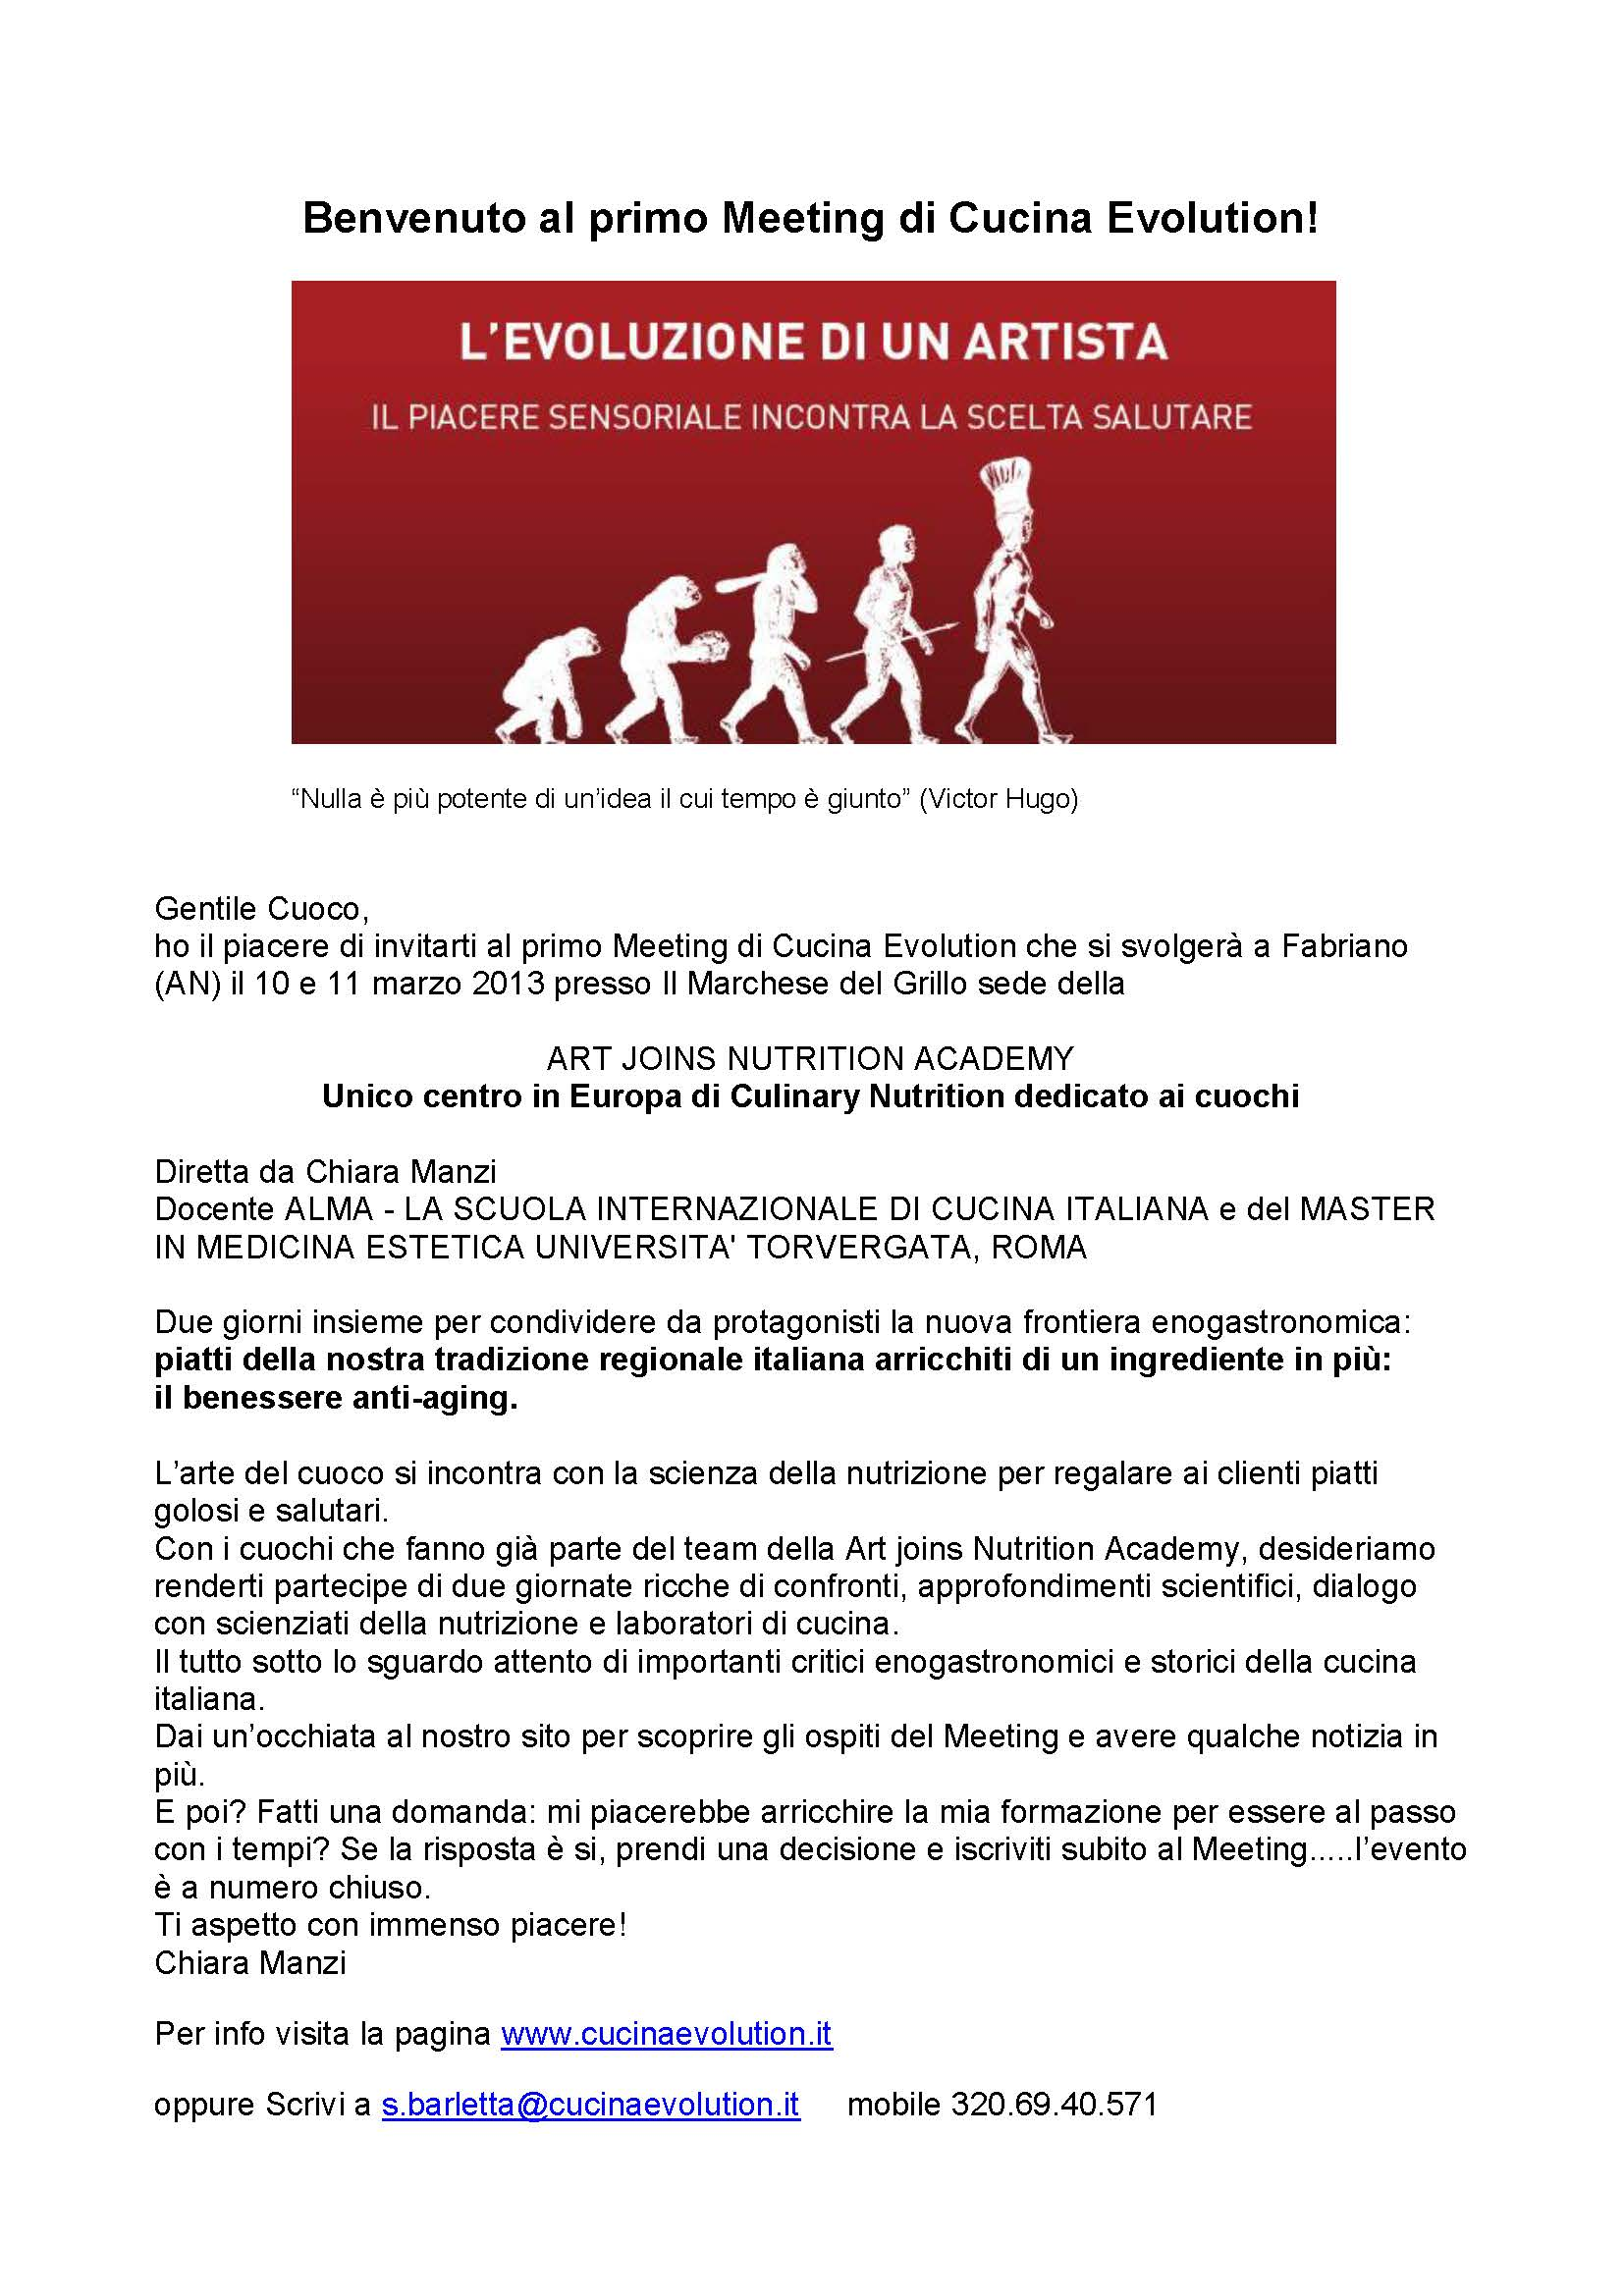 Invito al primo Meeting di Cucina Evolution. 10-11 Marzo- Fabriano